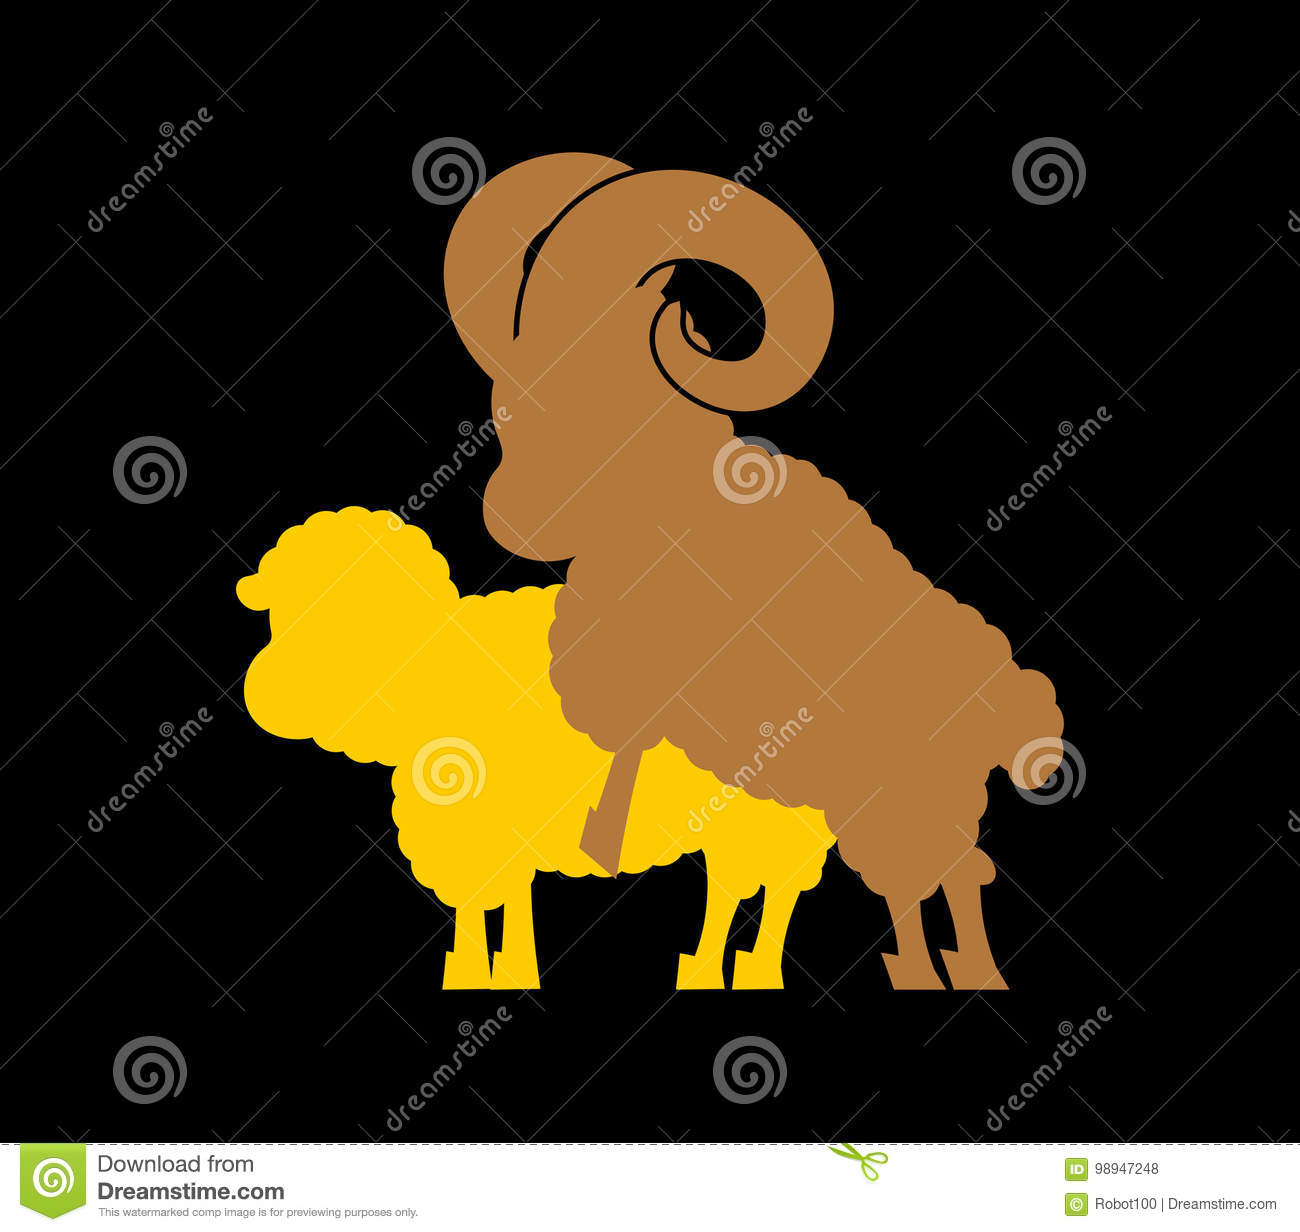 Sheep sex. Fasrm animal intercourse. Animals reproduction